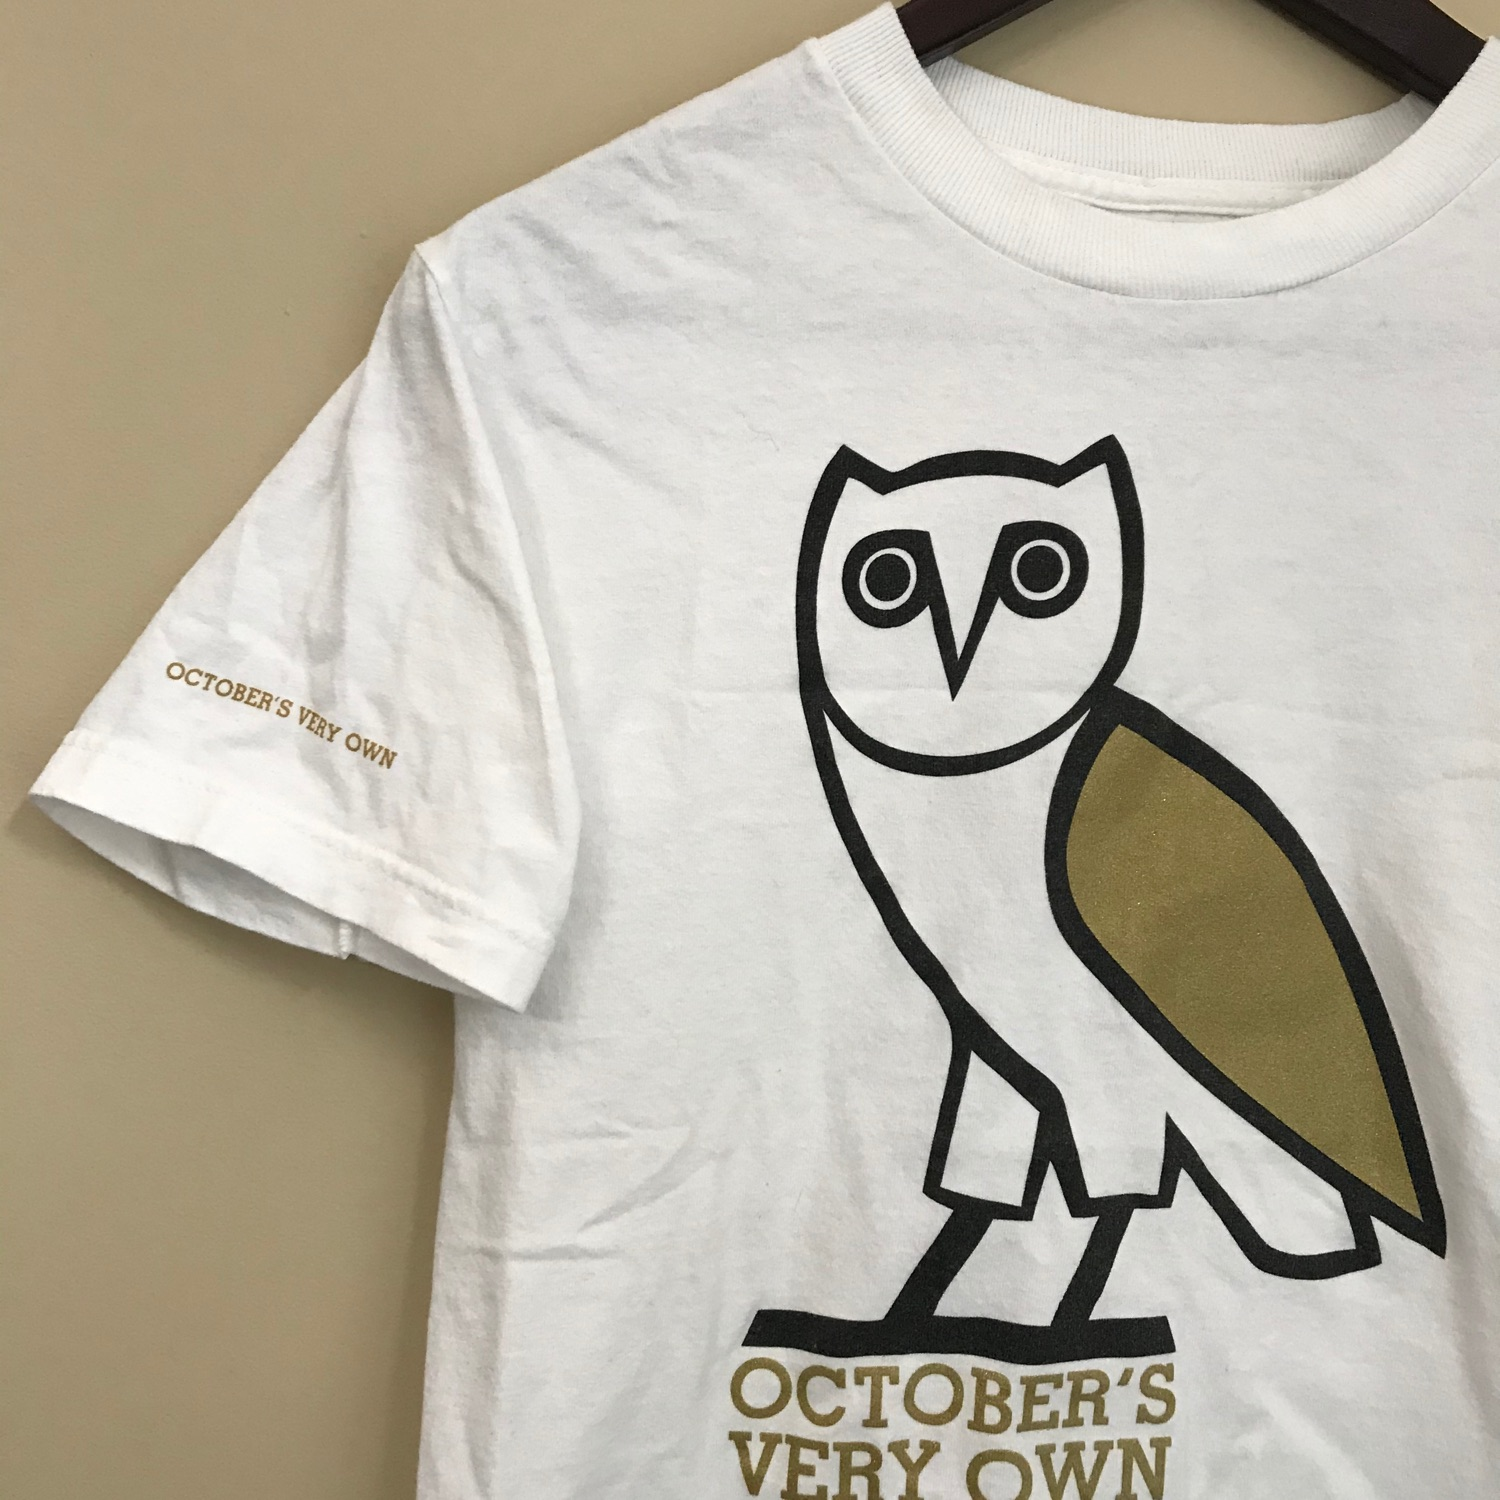 Ovo October's Very Own Original Logo Tee